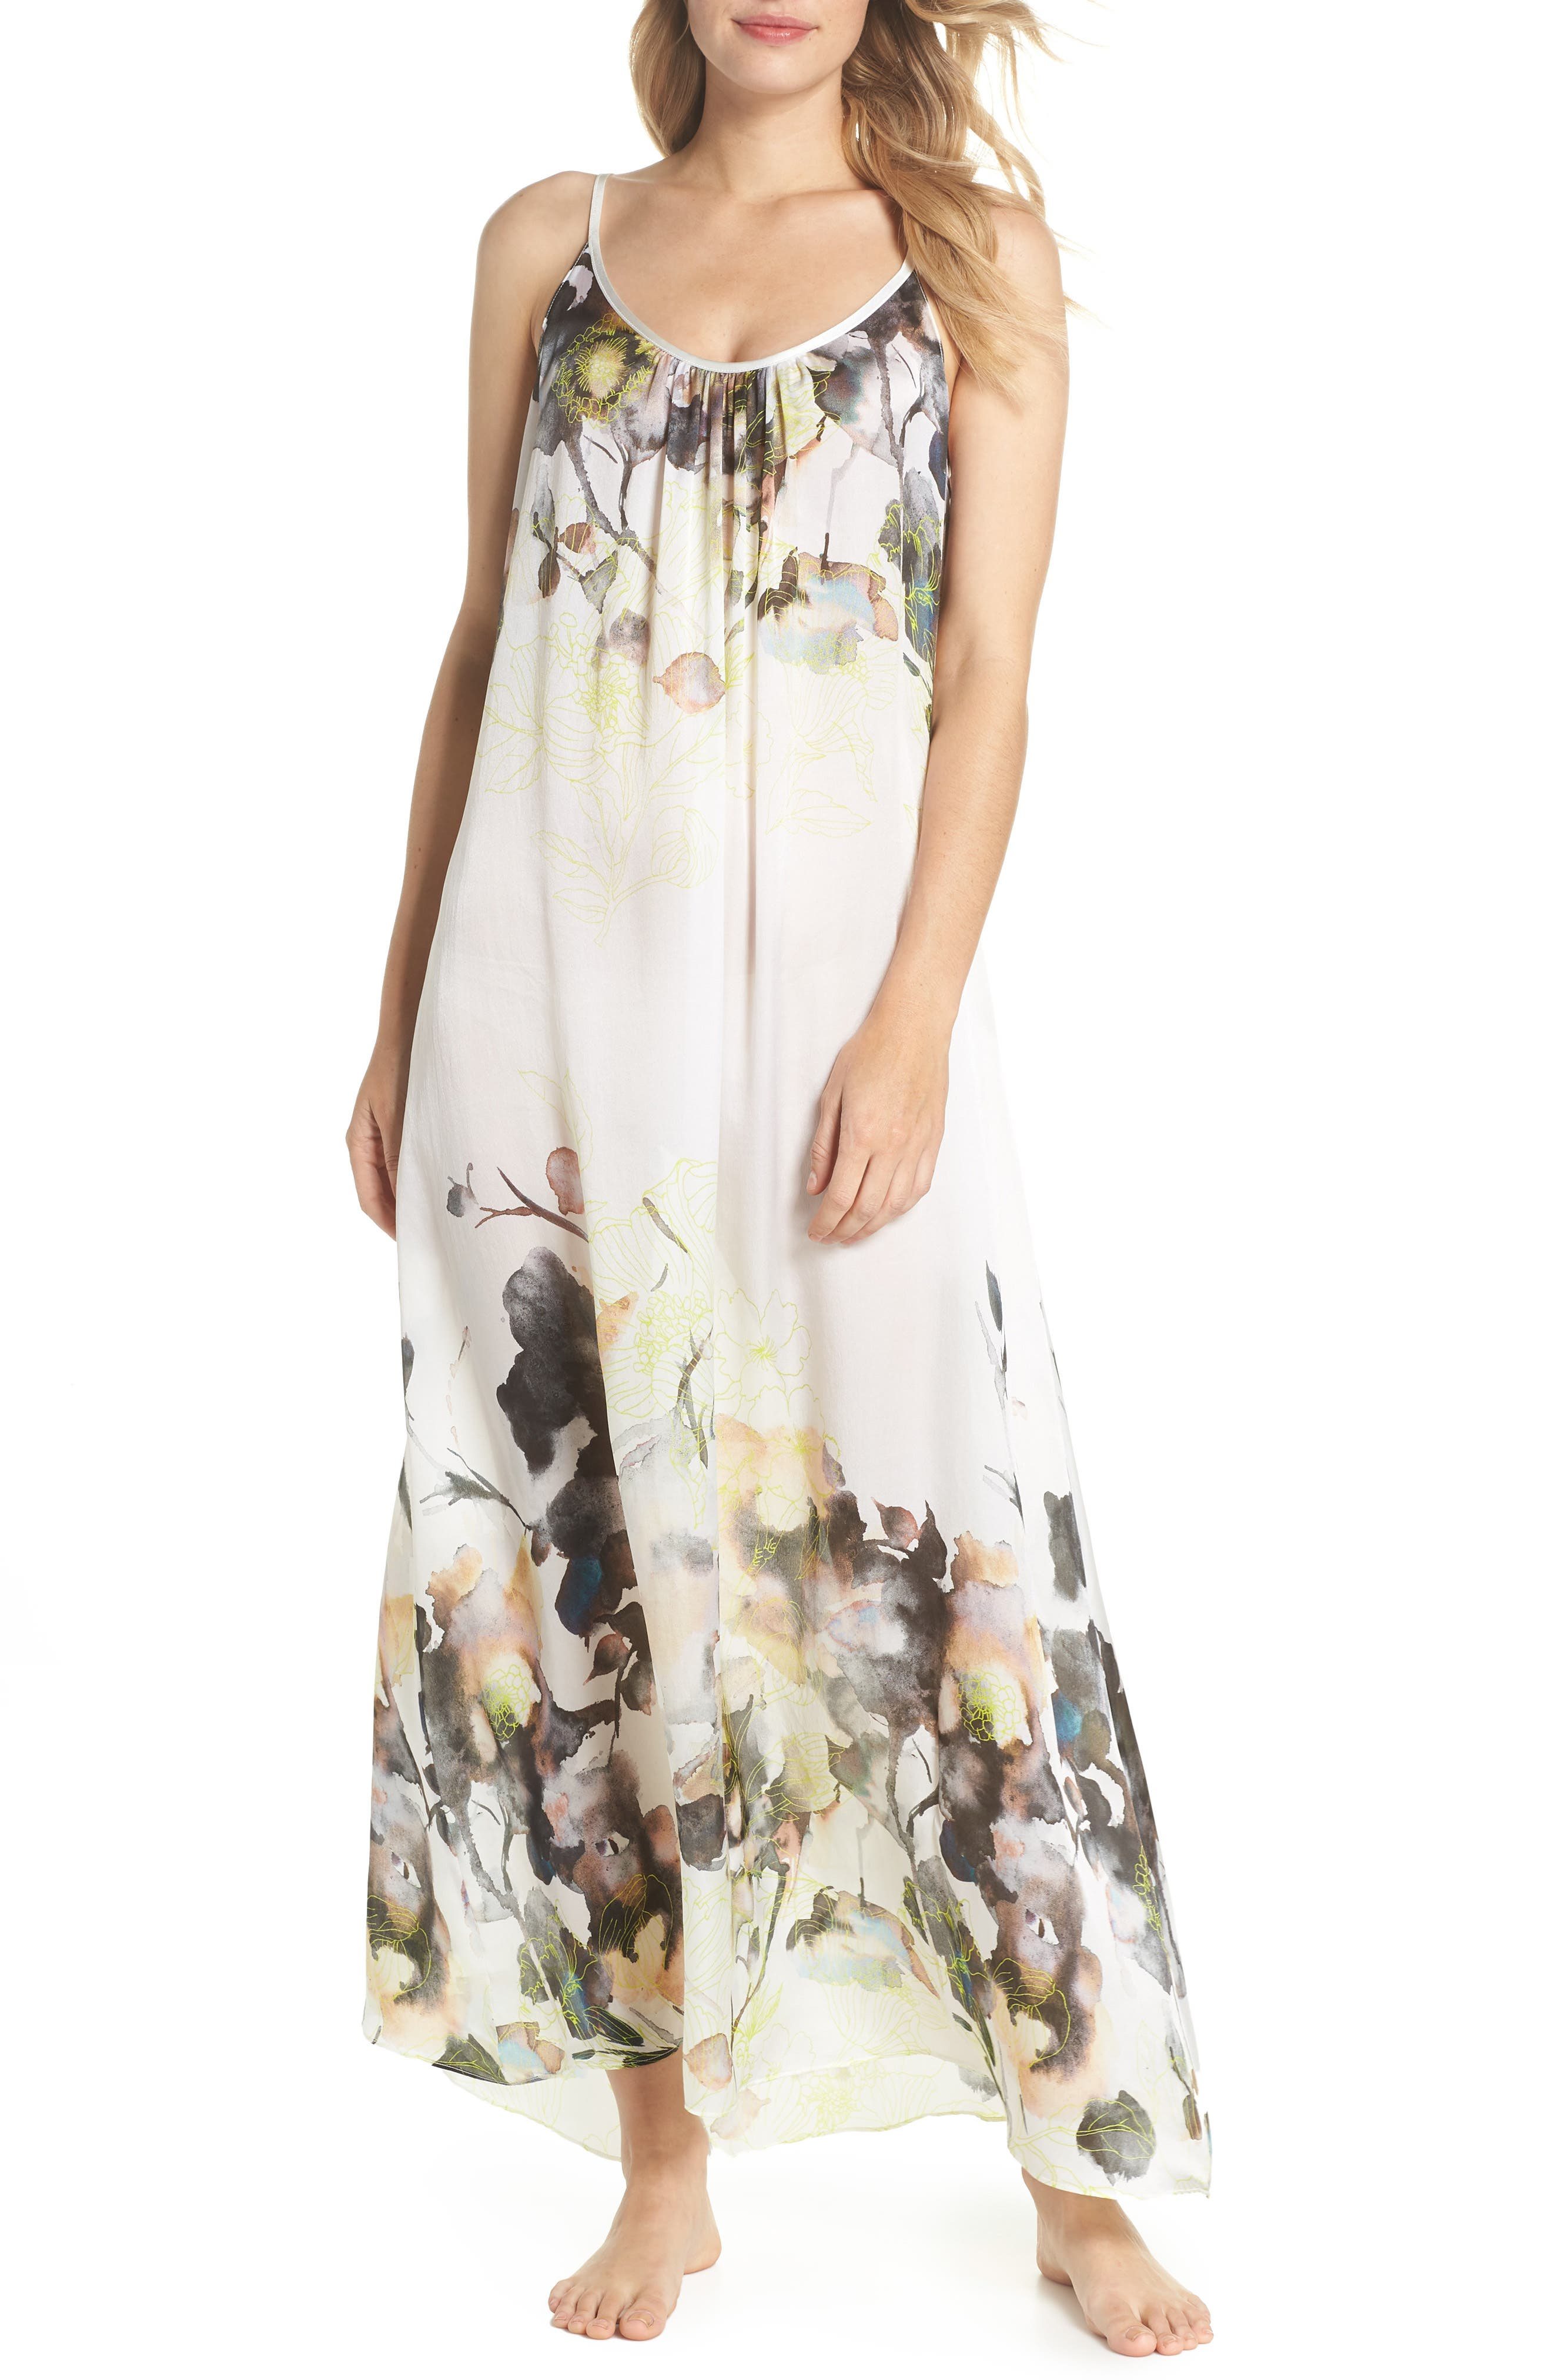 Floral Print Silk Nightgown,                             Main thumbnail 1, color,                             Limelight Print